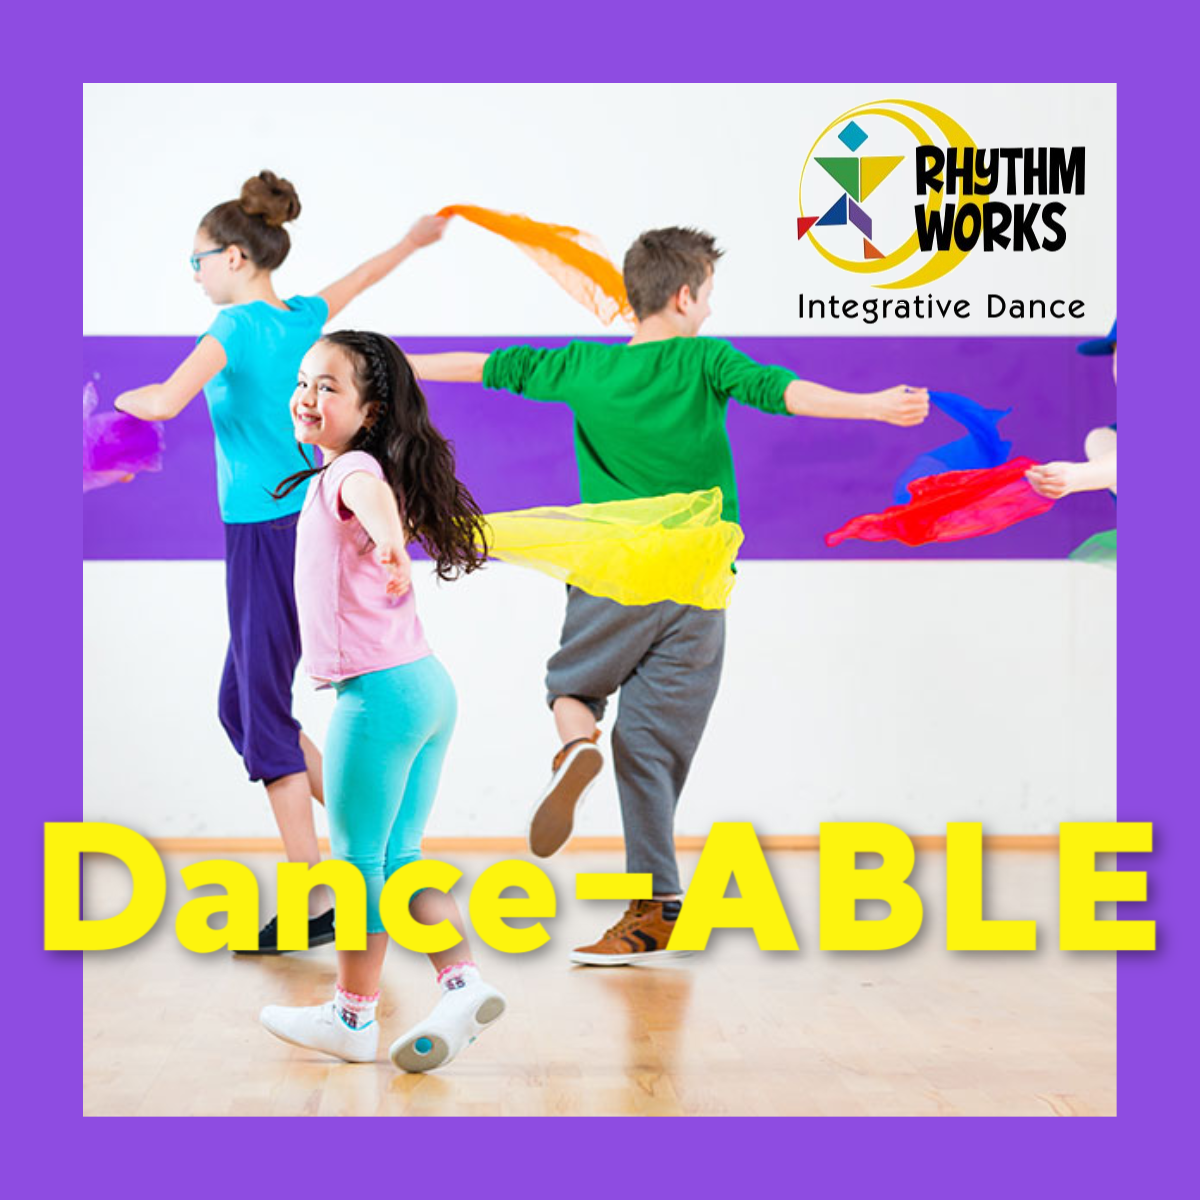 Introducing Dance-ABLE!